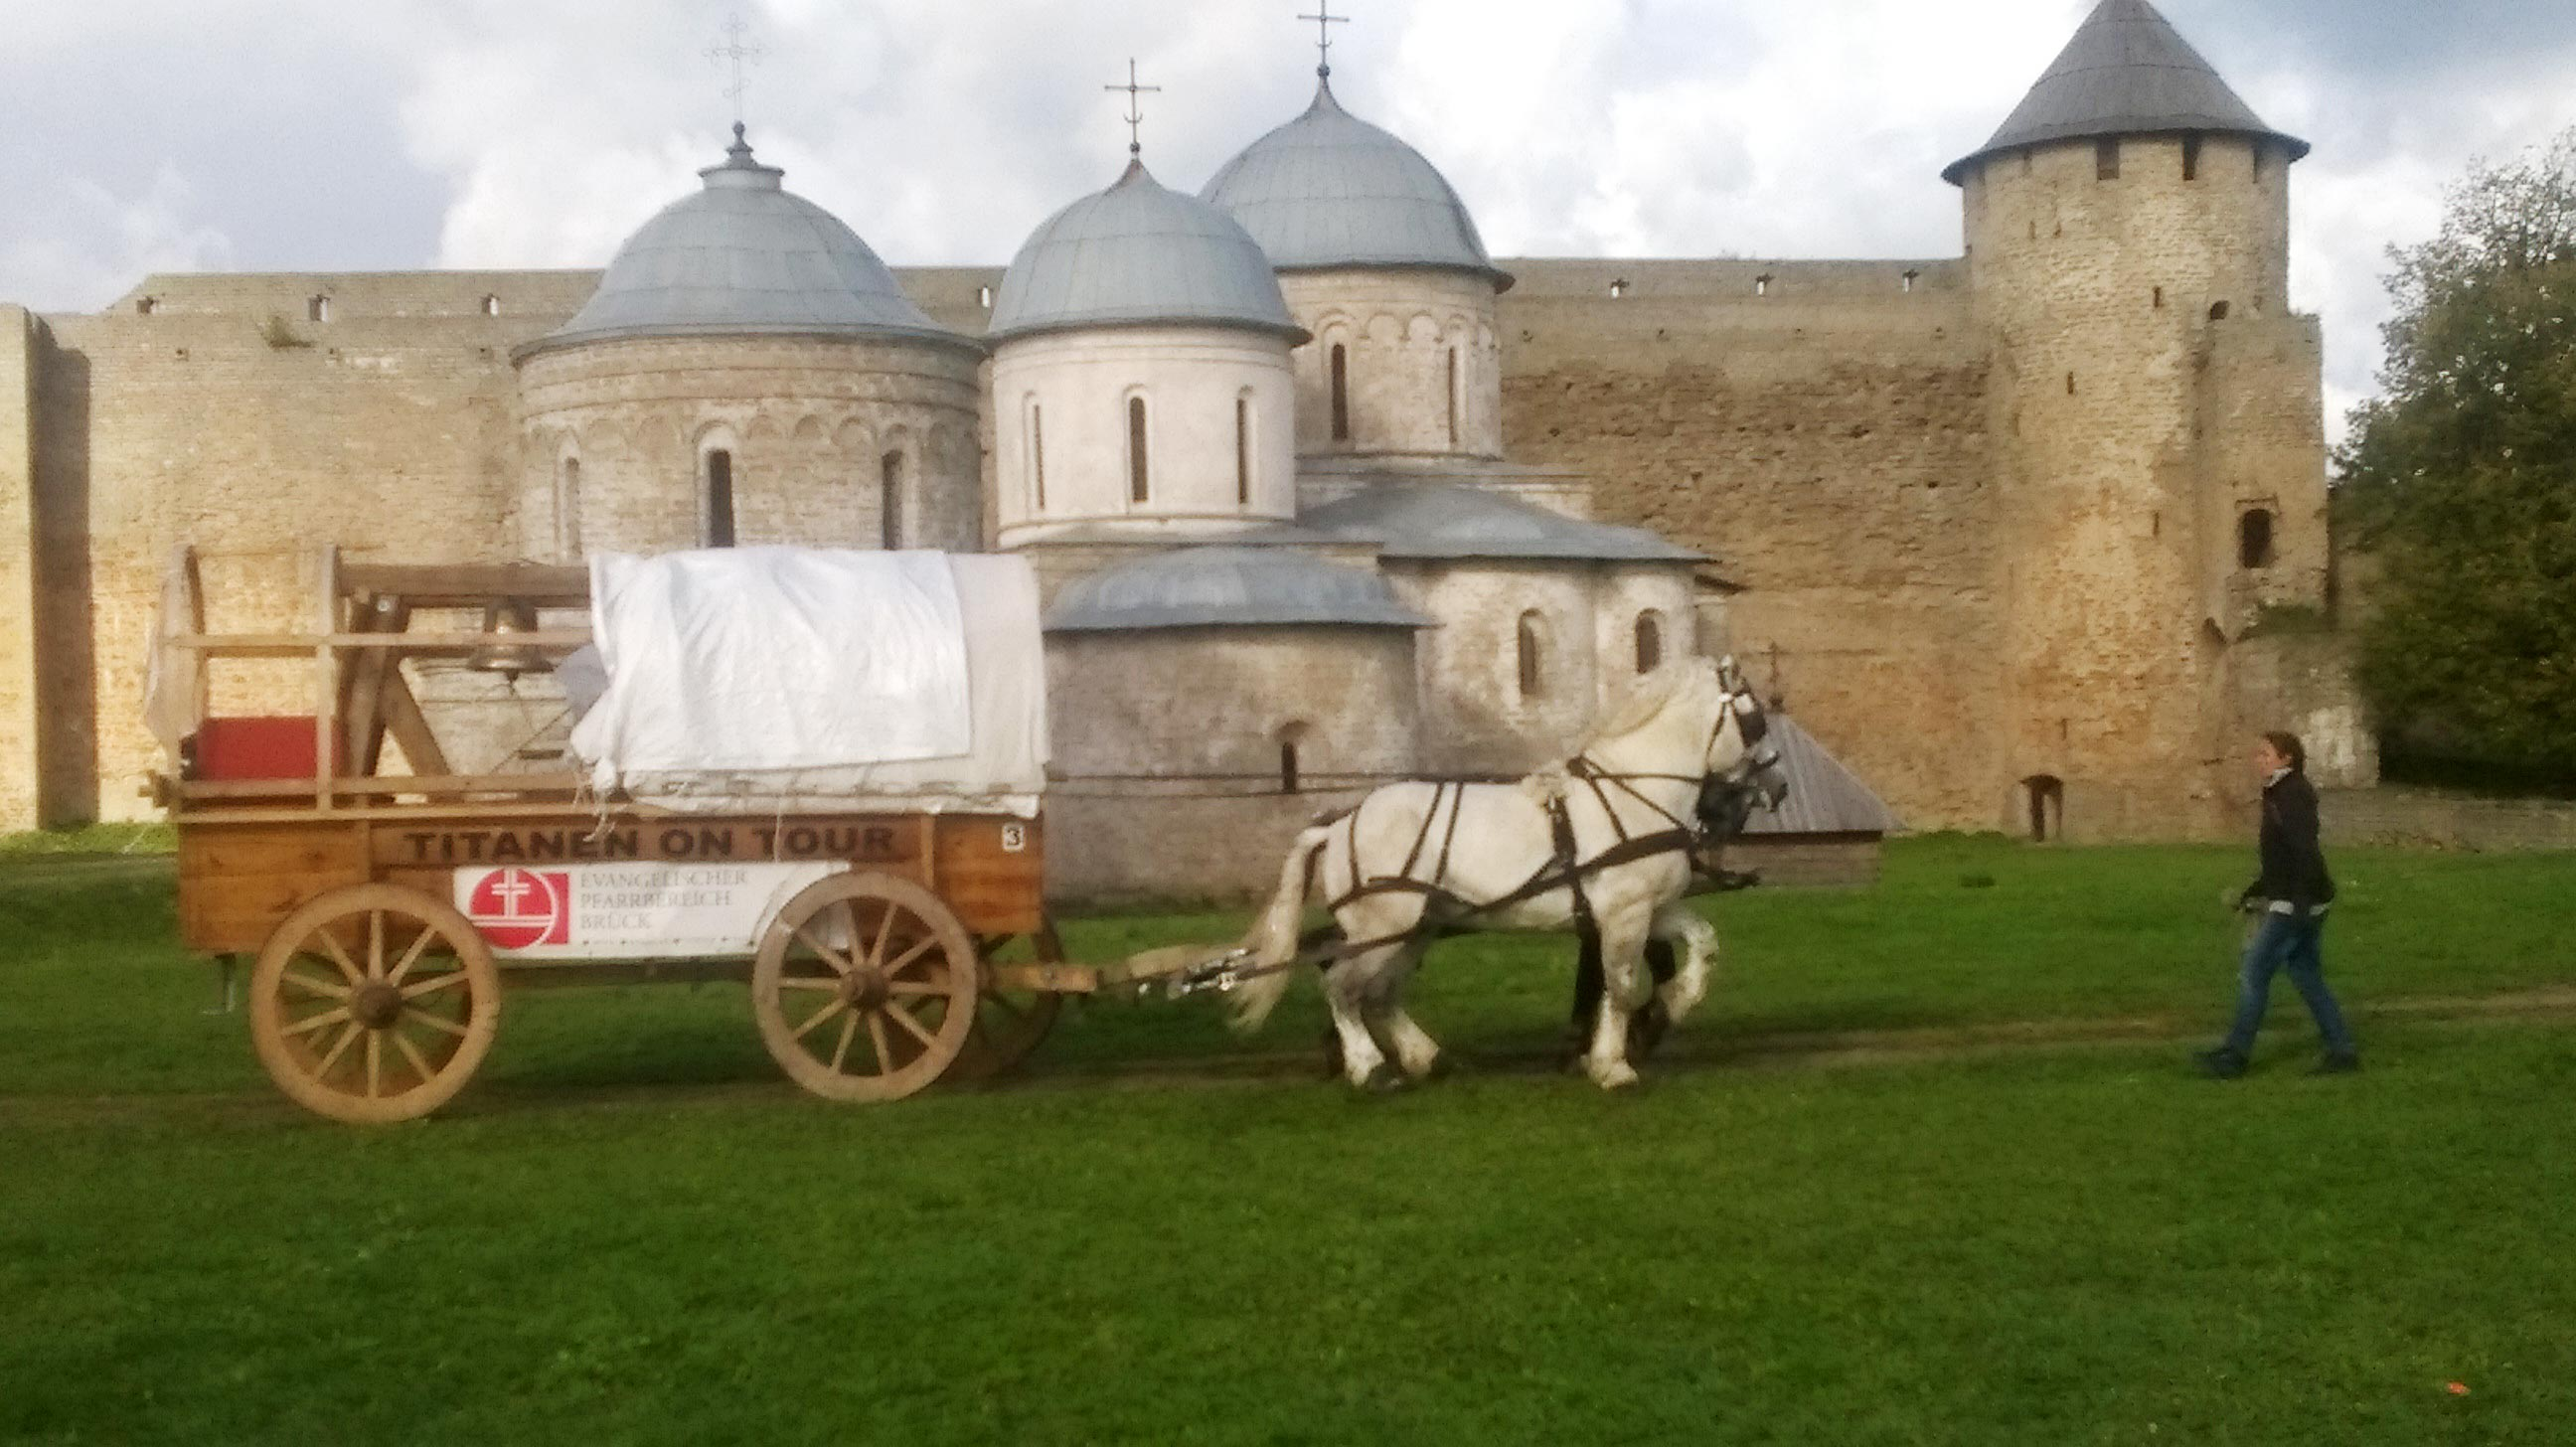 Glocke in der Burg Ivangorod - Titanen on tour in Russland